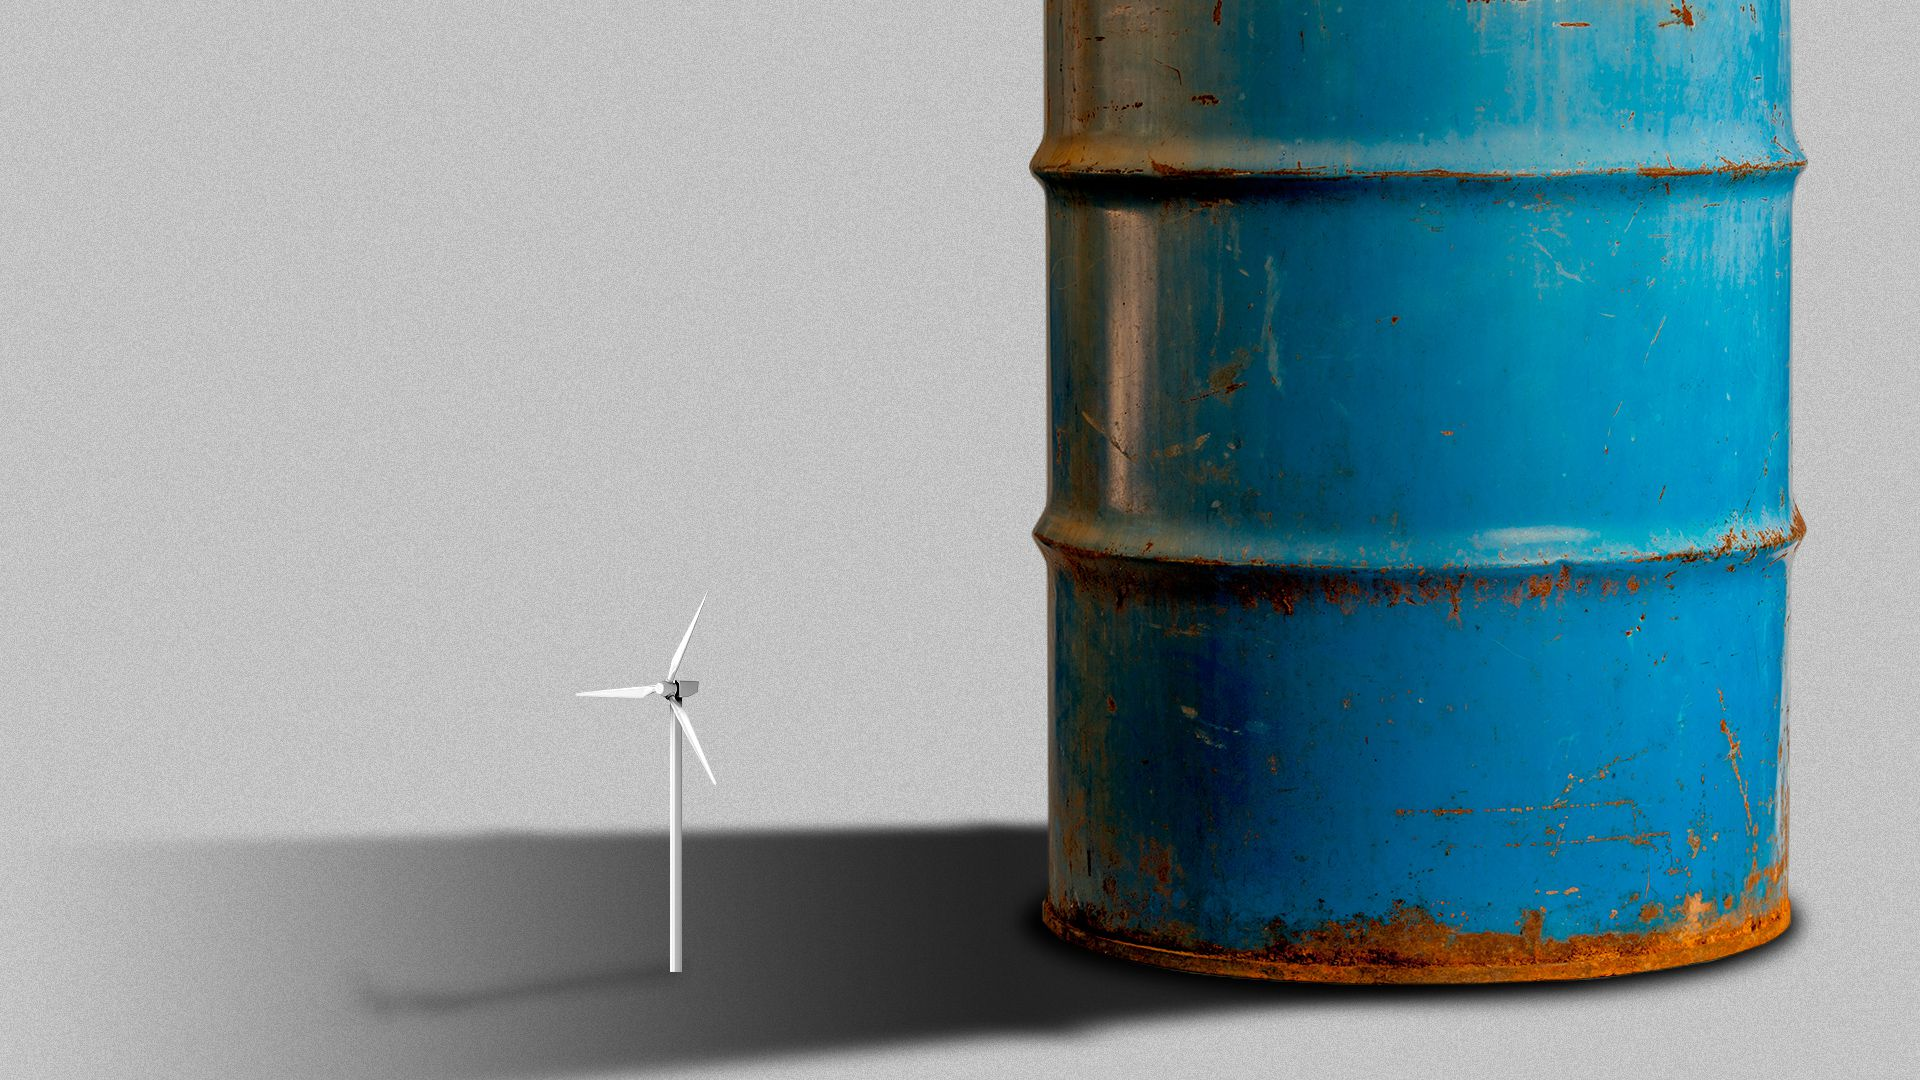 Illustration of a large oil barrel casting a shadow over a tiny wind turbine.